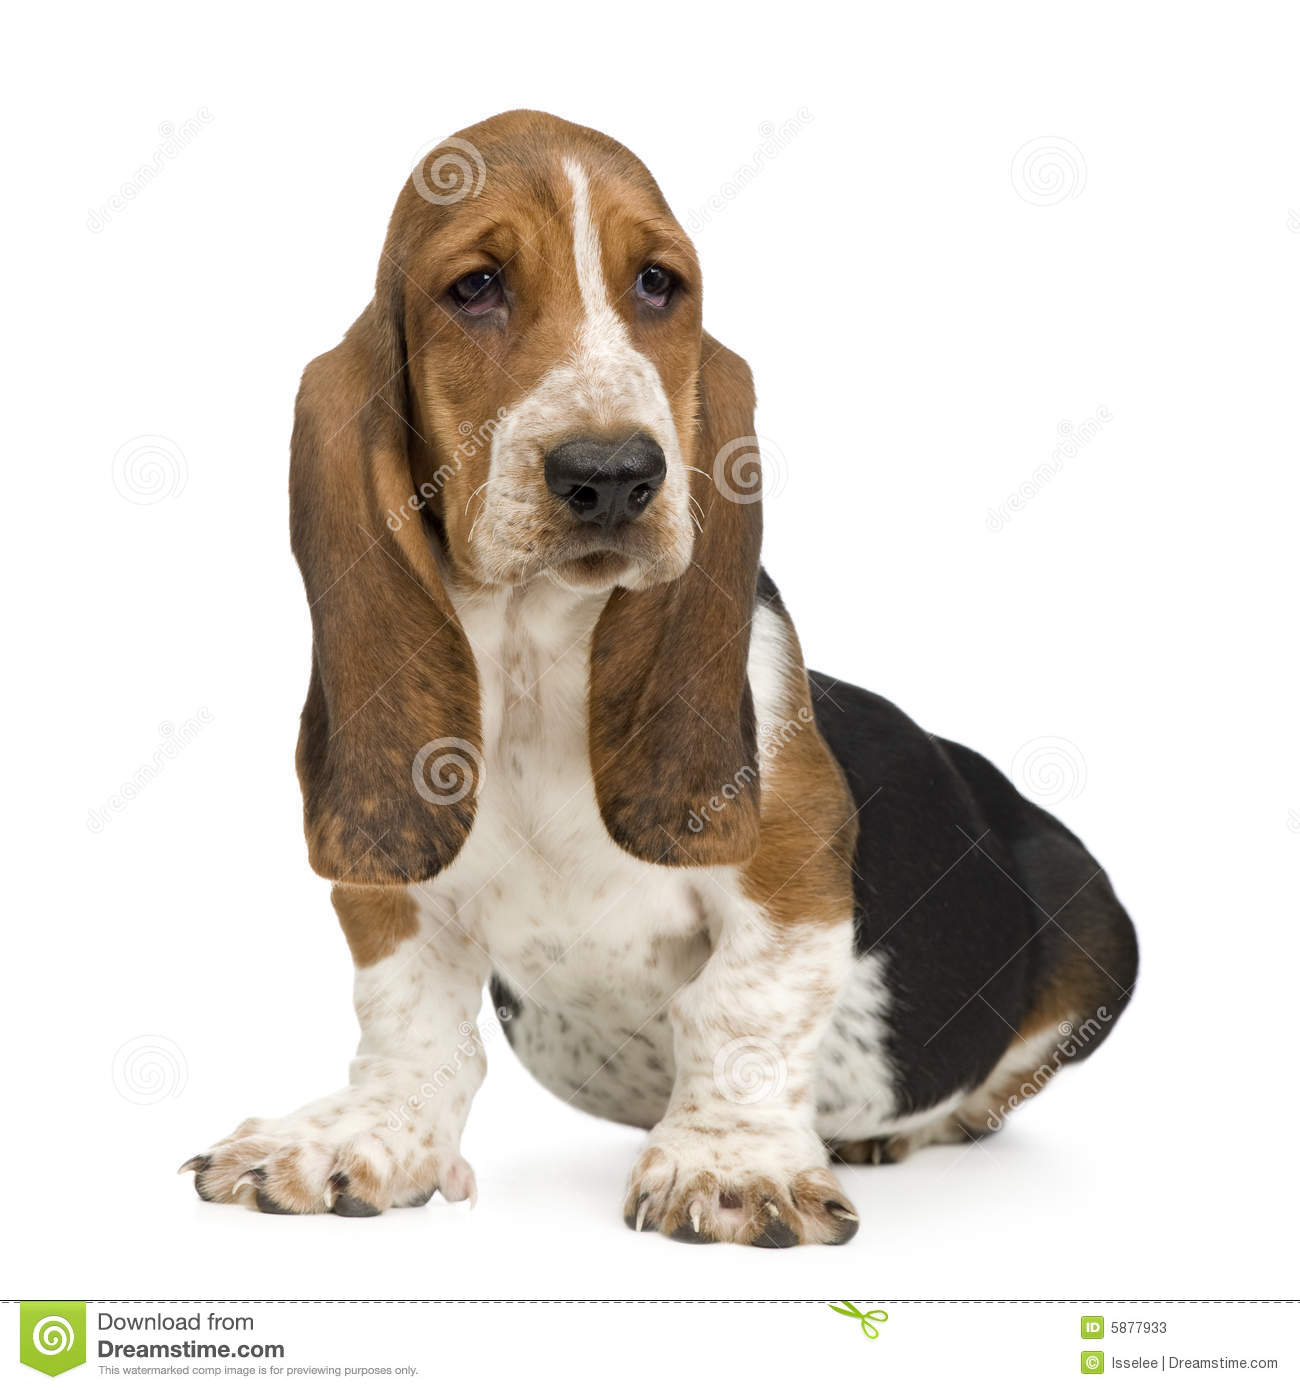 What Kind Of Dog Is The Hush Puppy